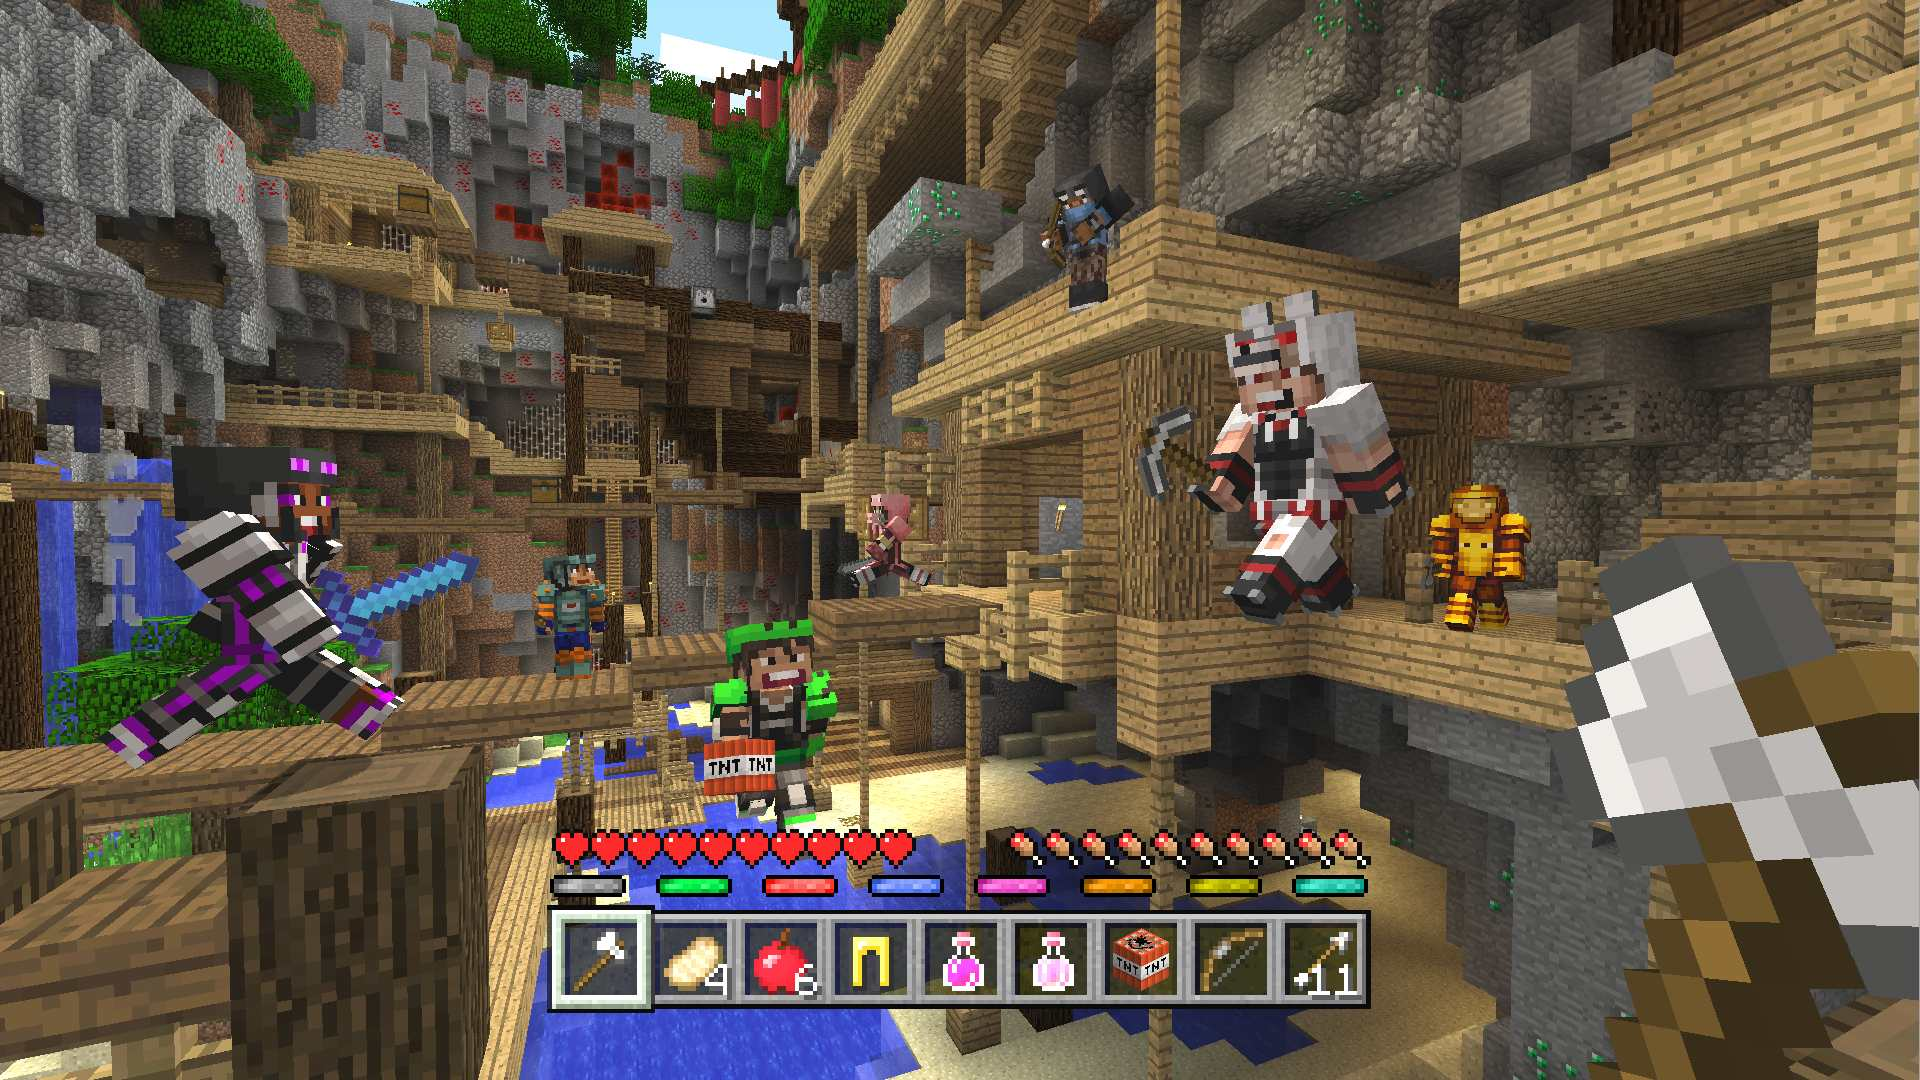 Minecraft Mini Game Masters Skin Pack On PS Official PlayStation - Minecraft ps4 minispiele